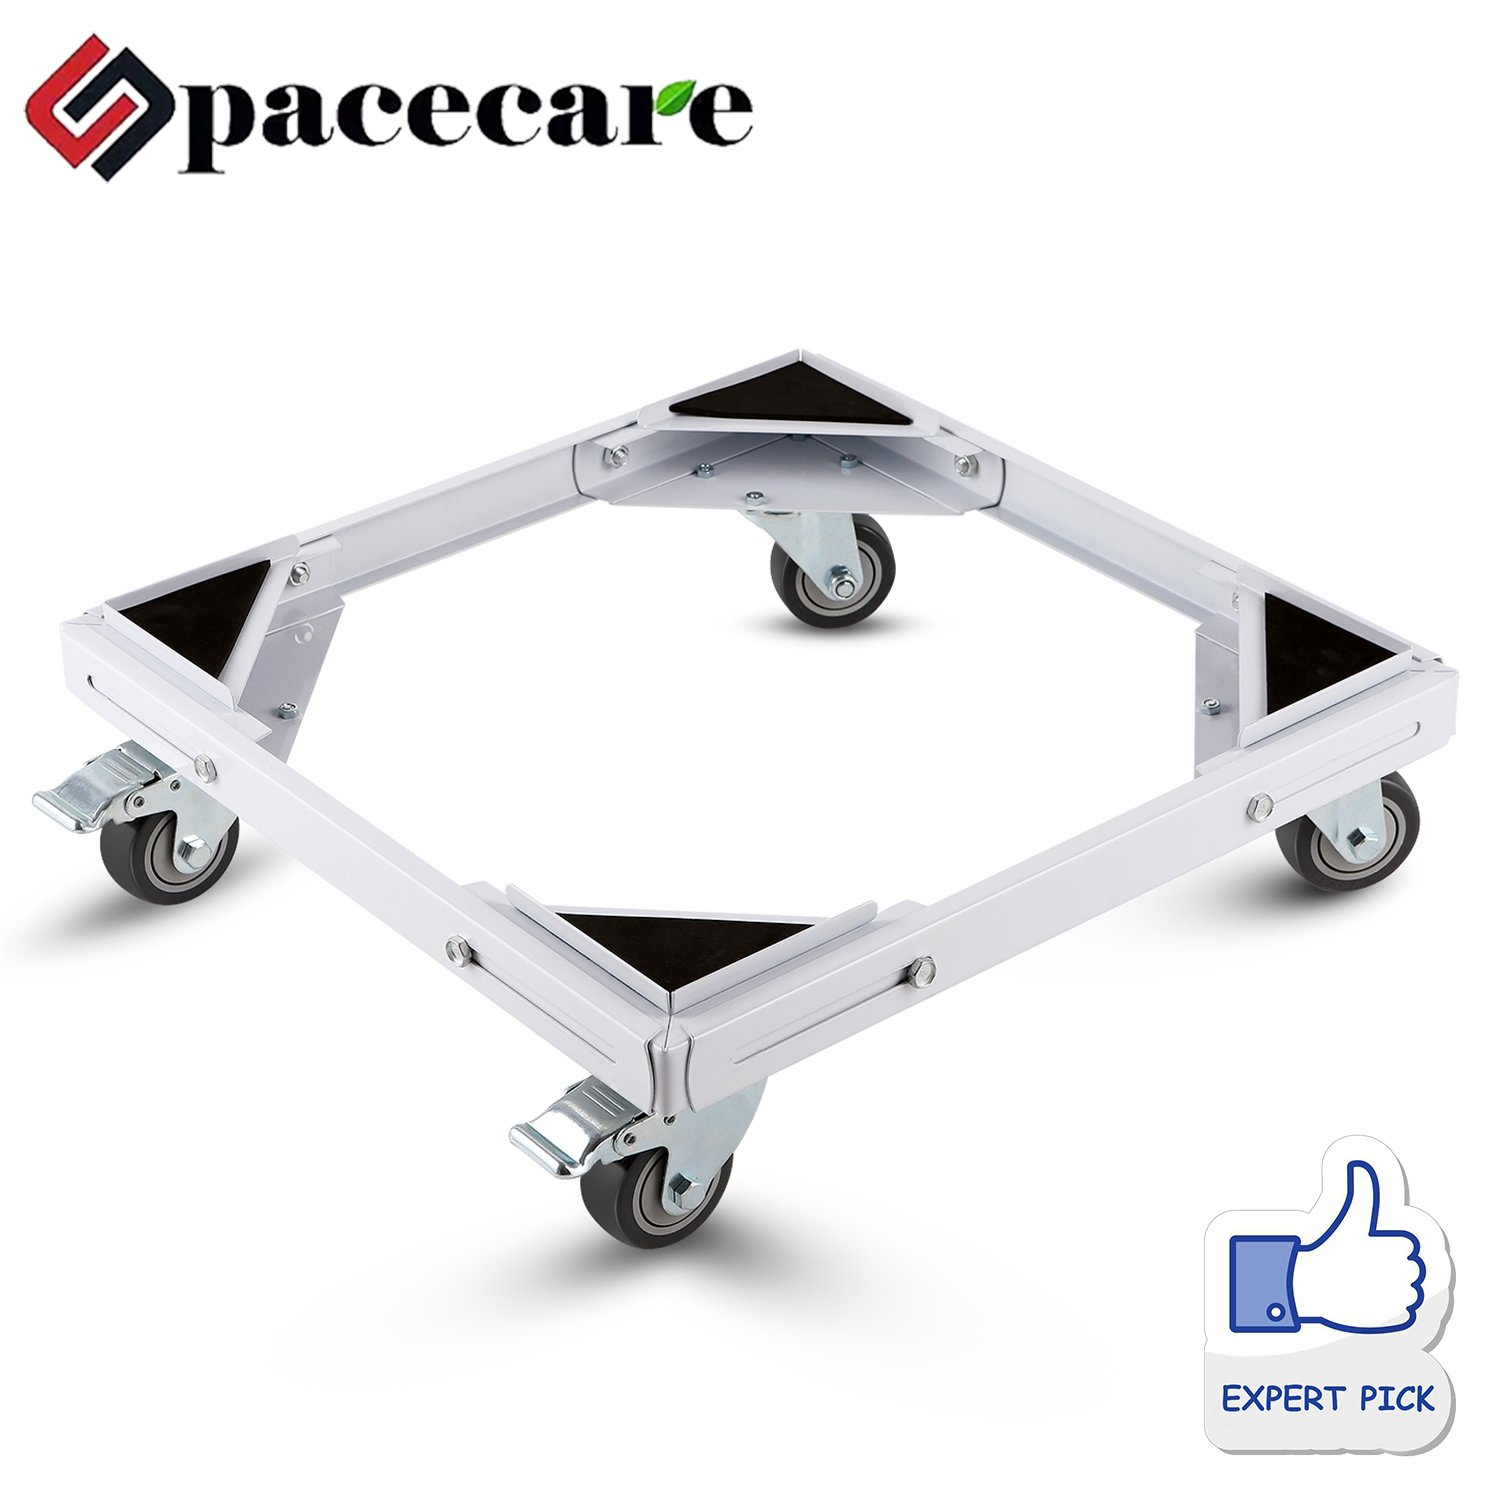 SPACECARE Telescopic Furniture Dolly Roller with Swivel Locking Casters, Steady Steel Frame, STFD008 [New Version]